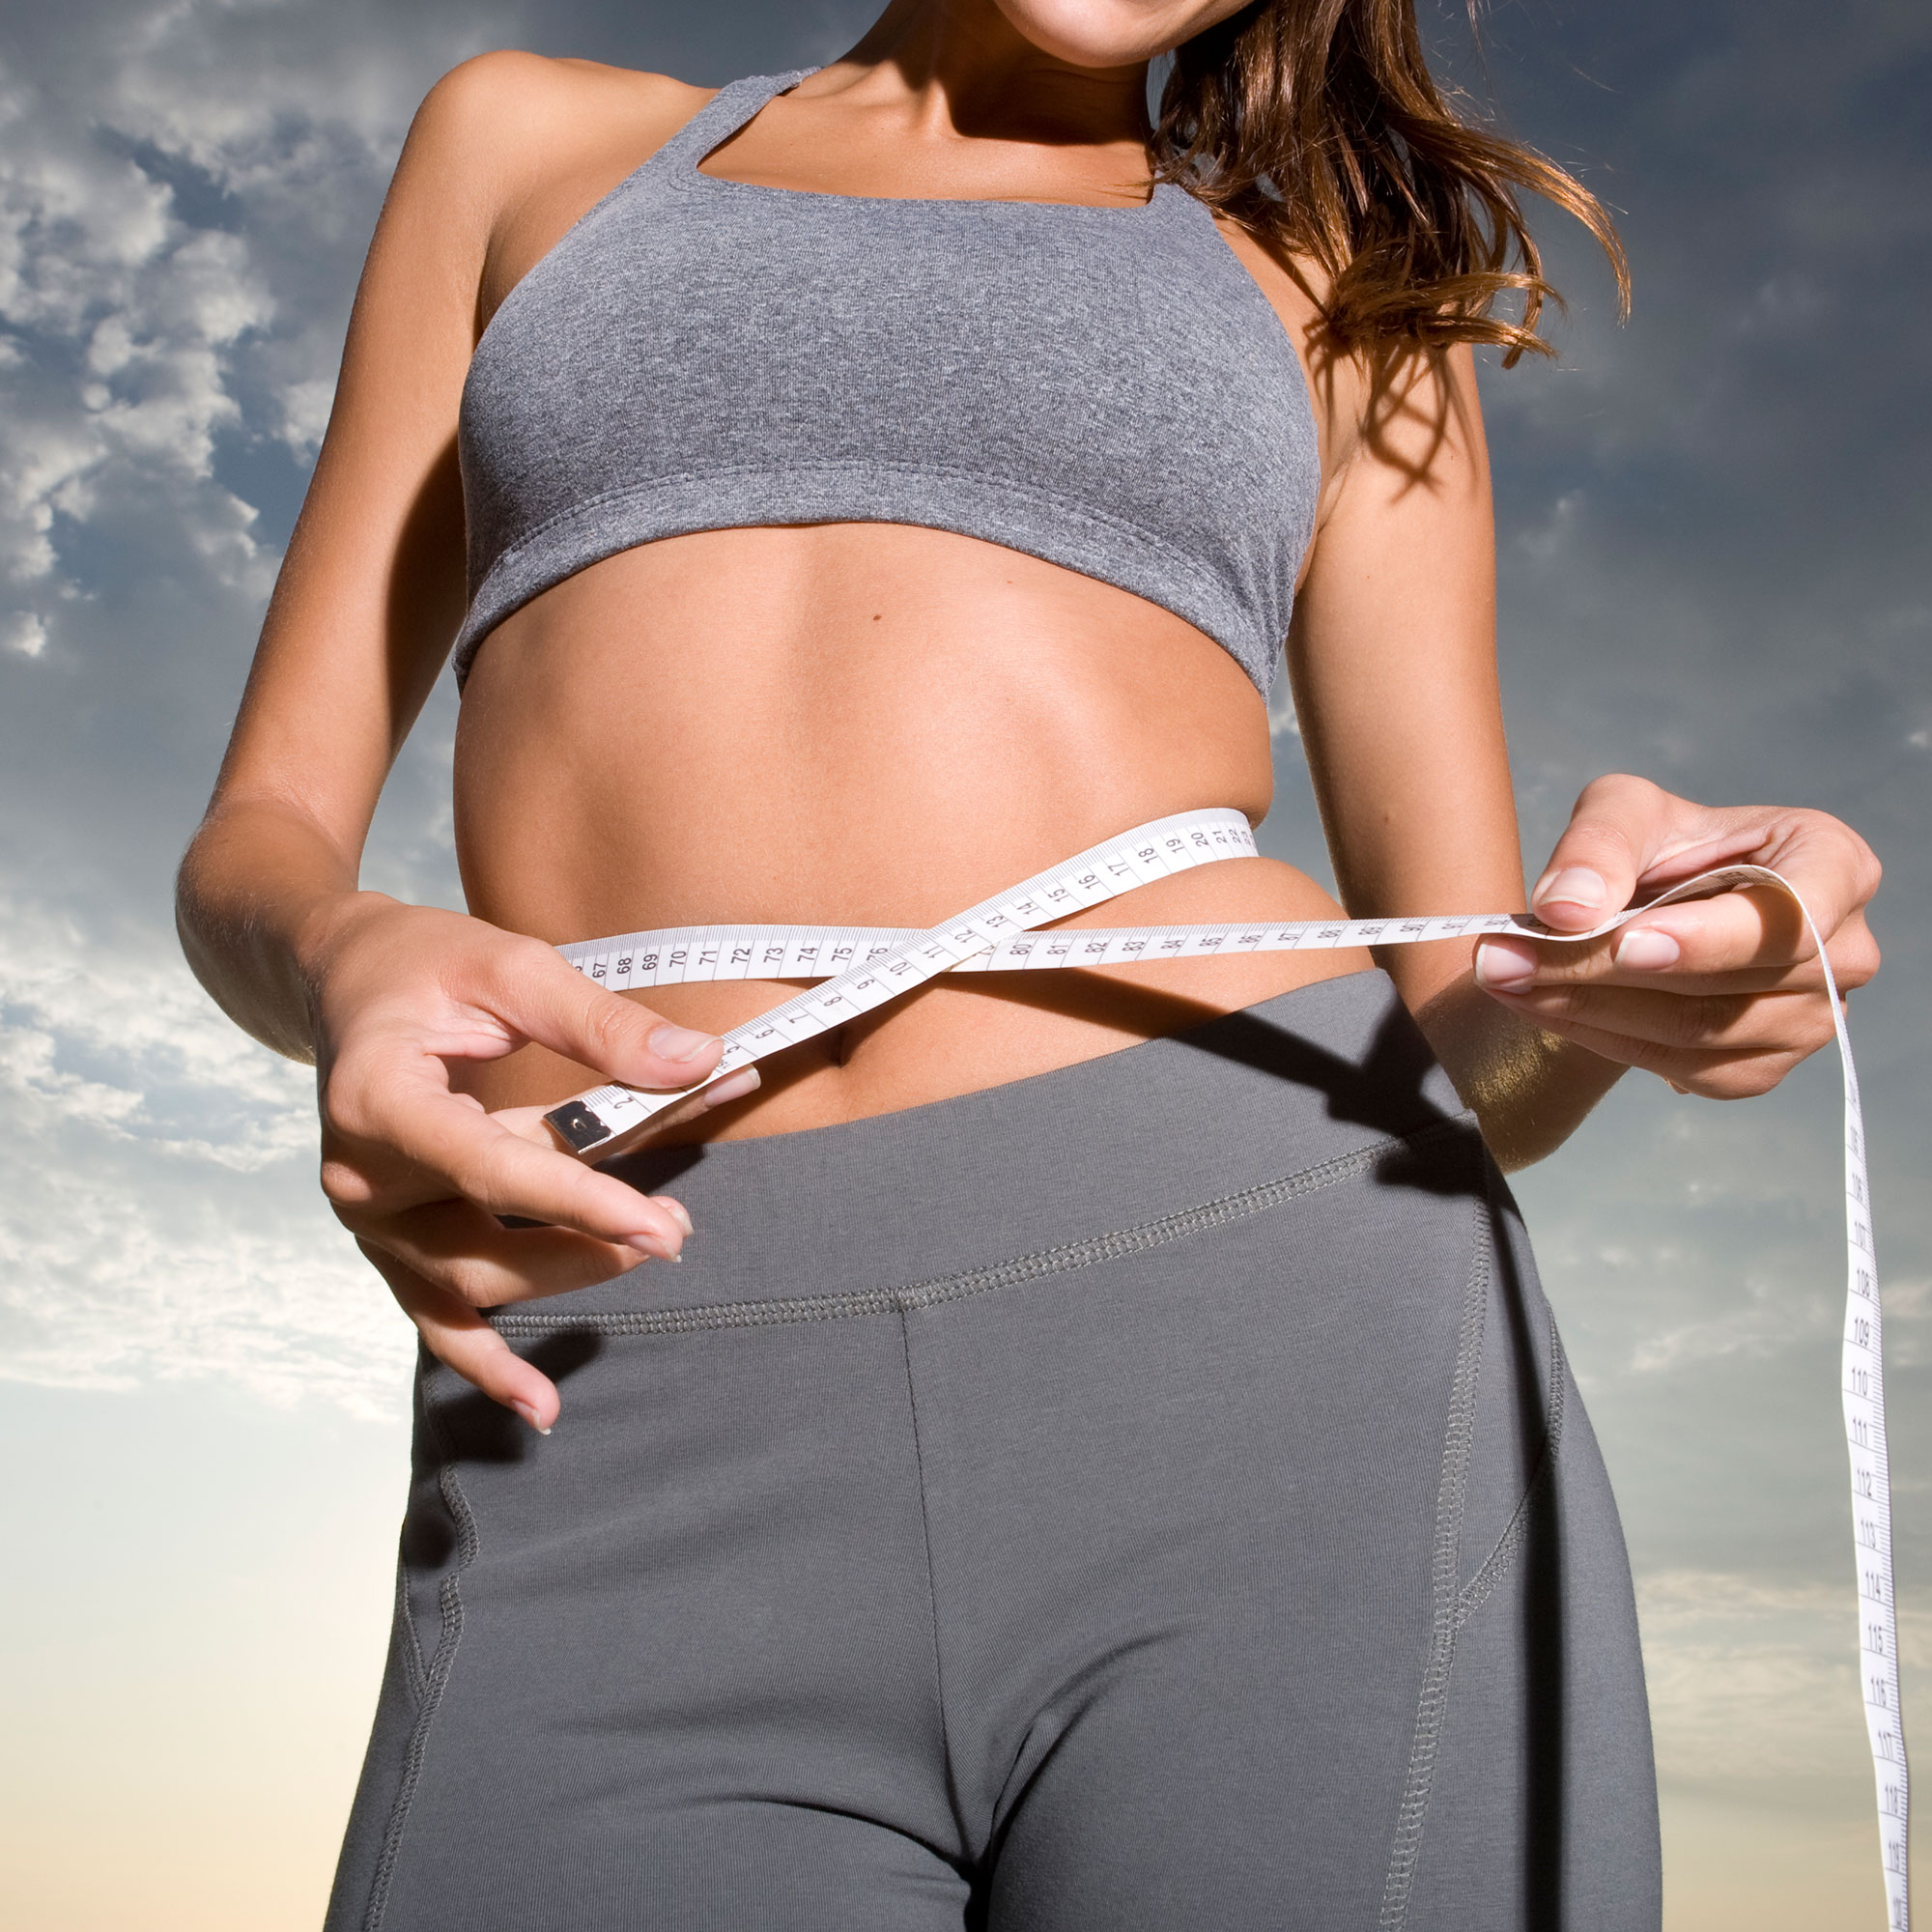 57 Science-Backed Weight Loss Tips